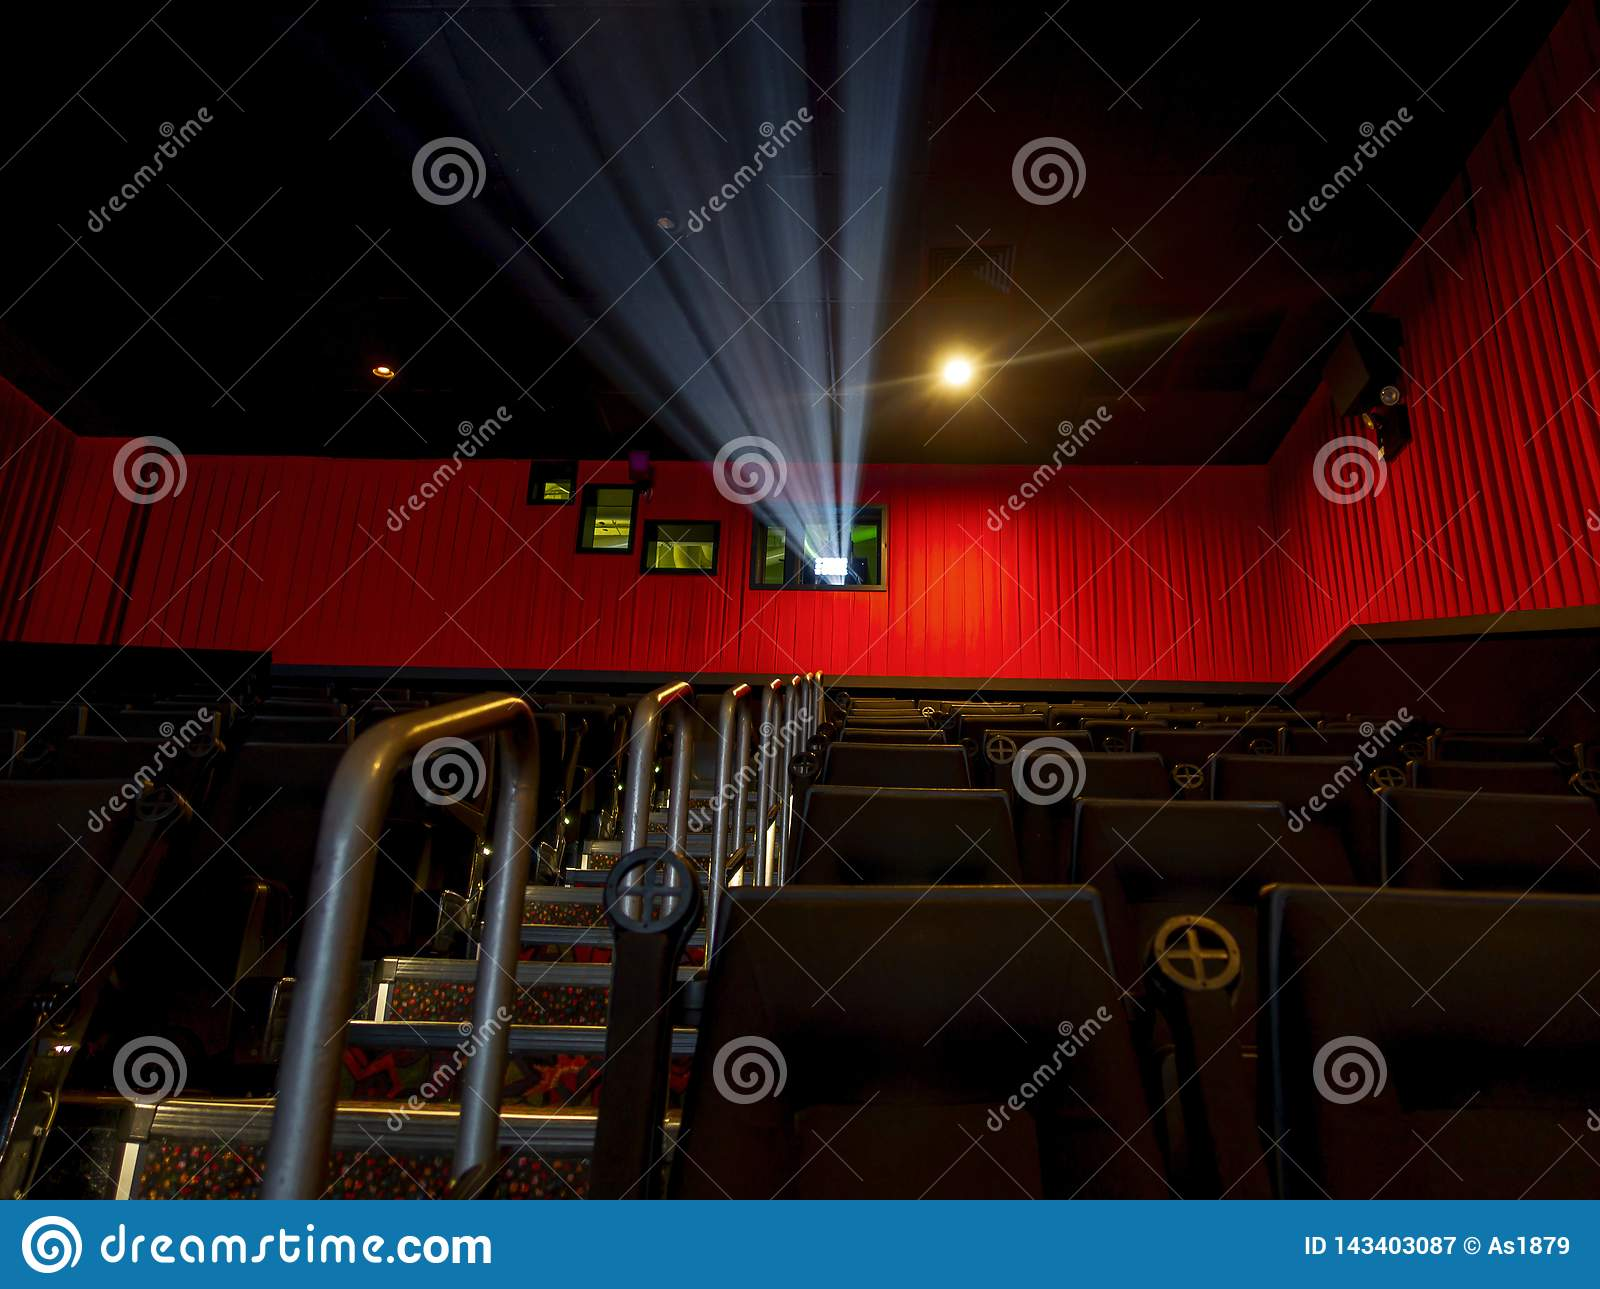 Movie Silver Screening Room Theater With Projector Light On And Seating And Stairs On Lush Red Color Curtains Stock Image Image Of Screening Play 143403087